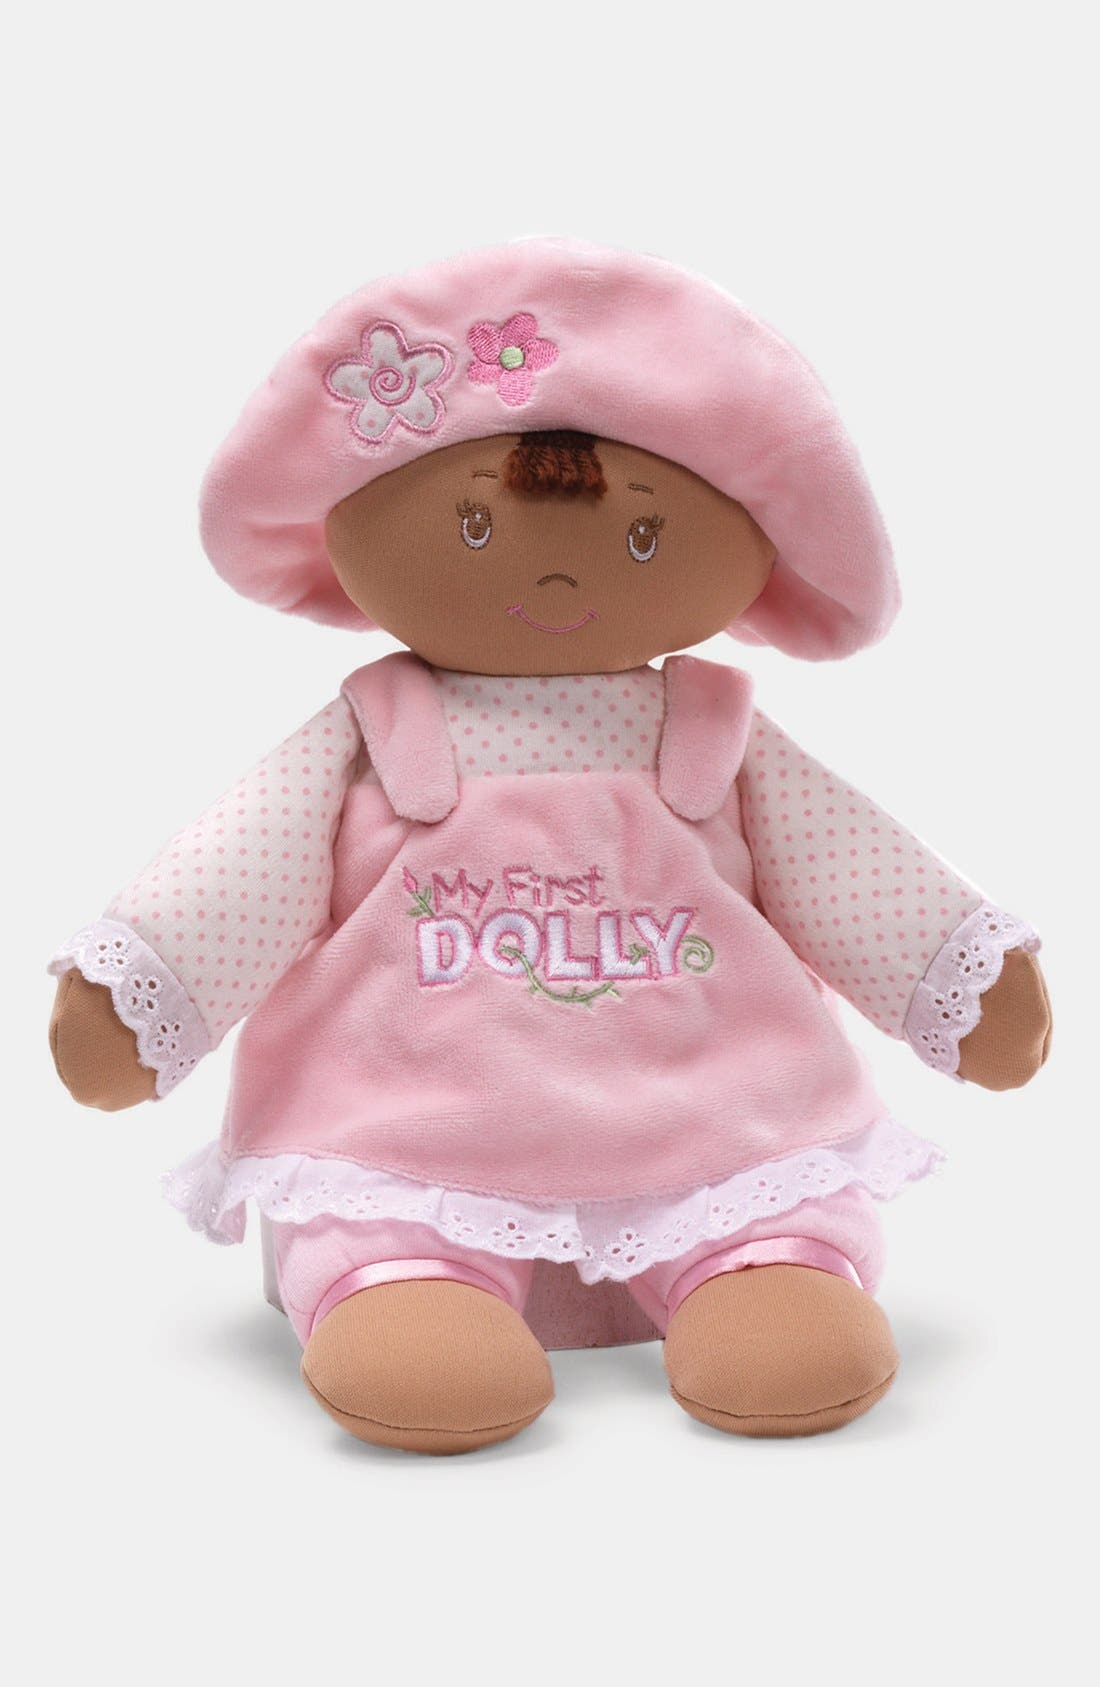 Main Image - Baby Gund 'My First Dolly' Stuffed Doll